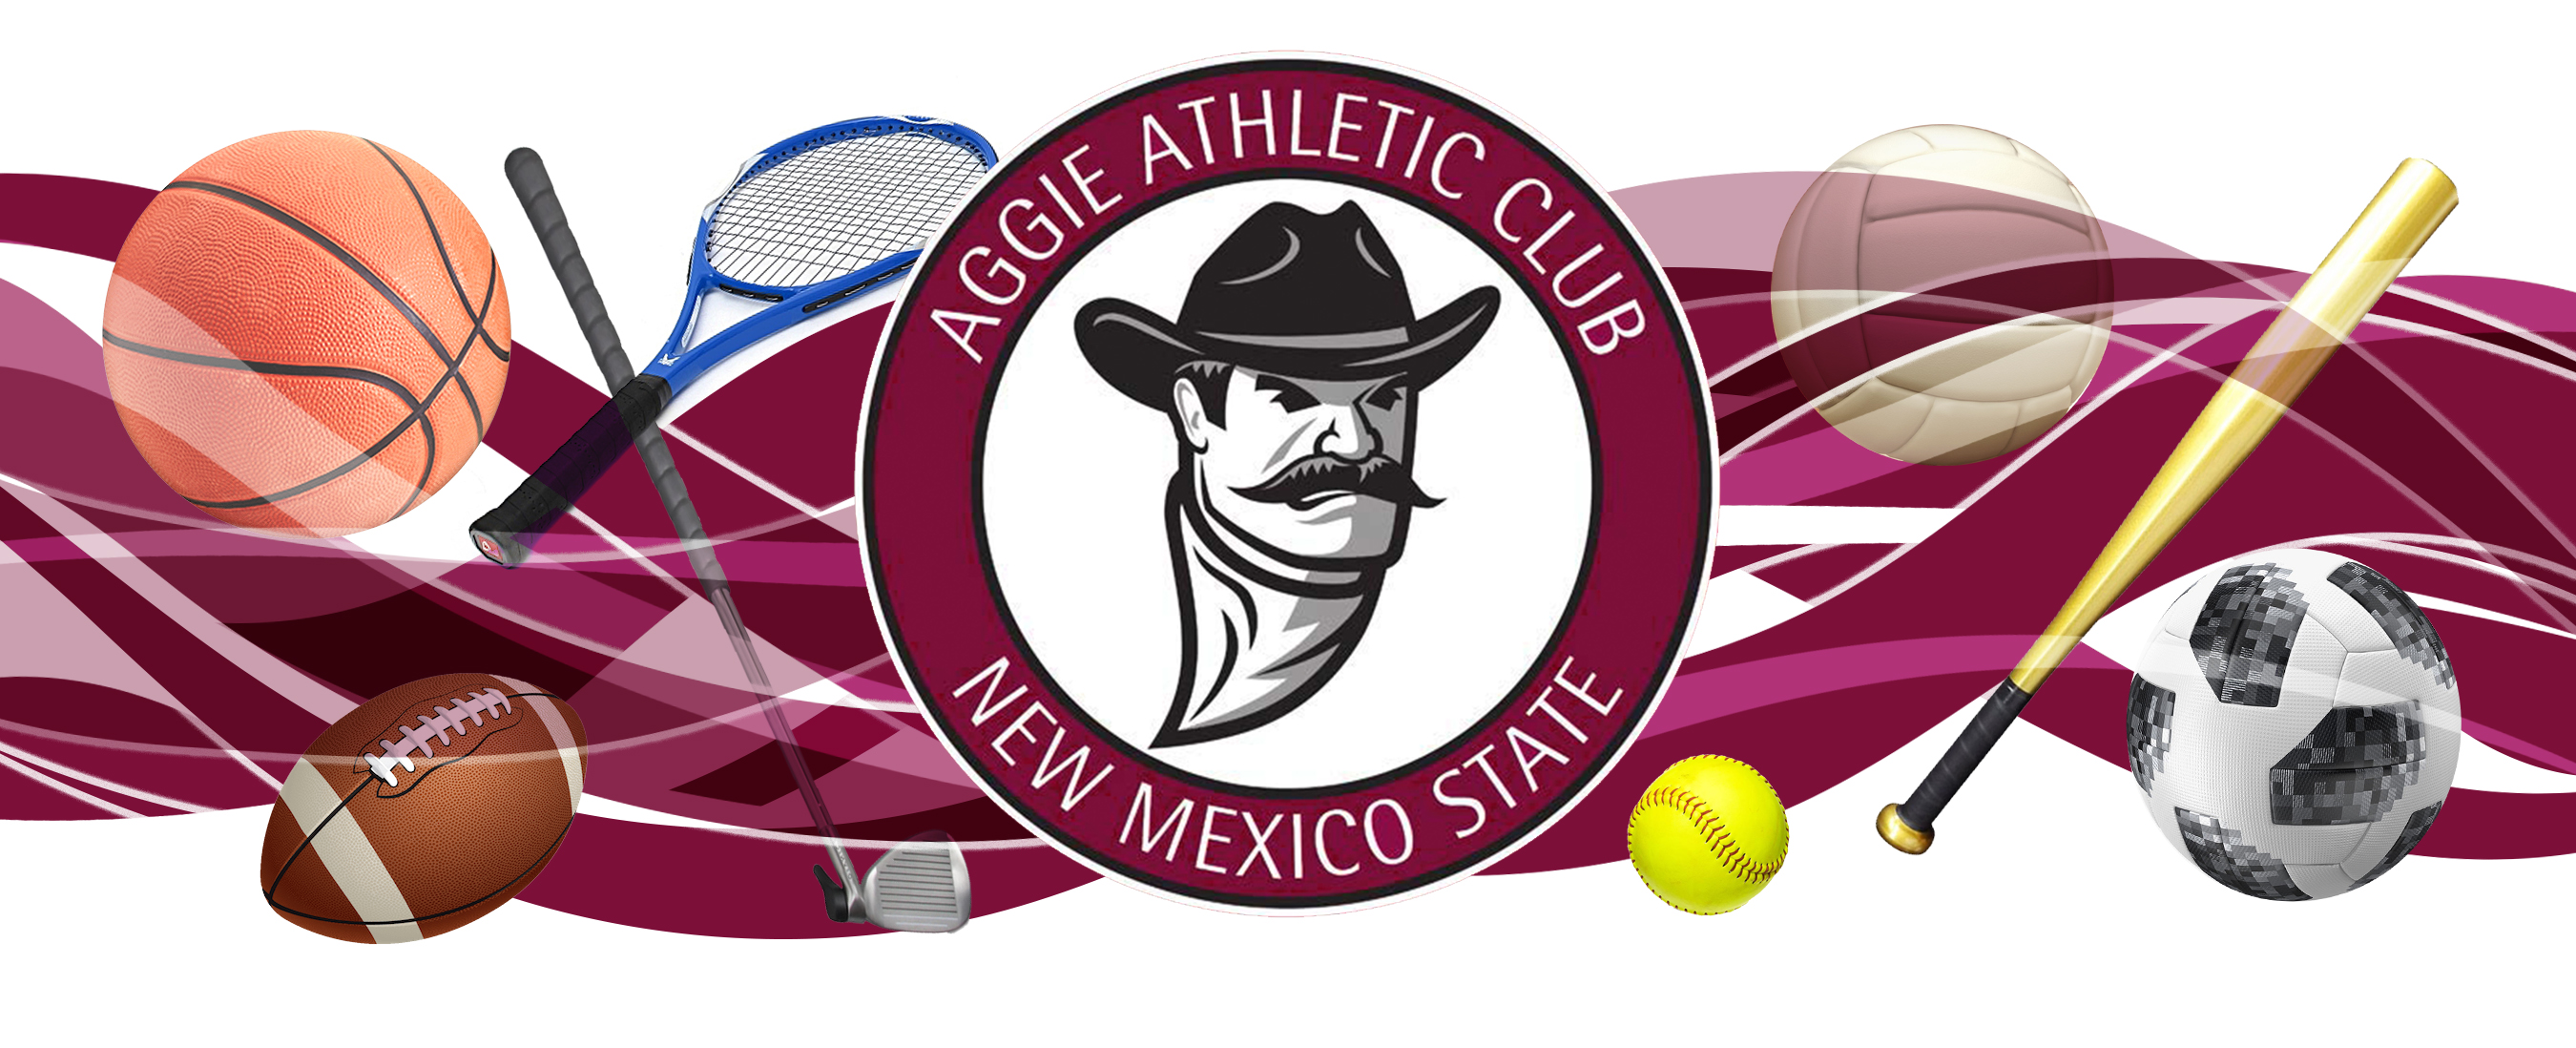 Join Aggie Athletic Club